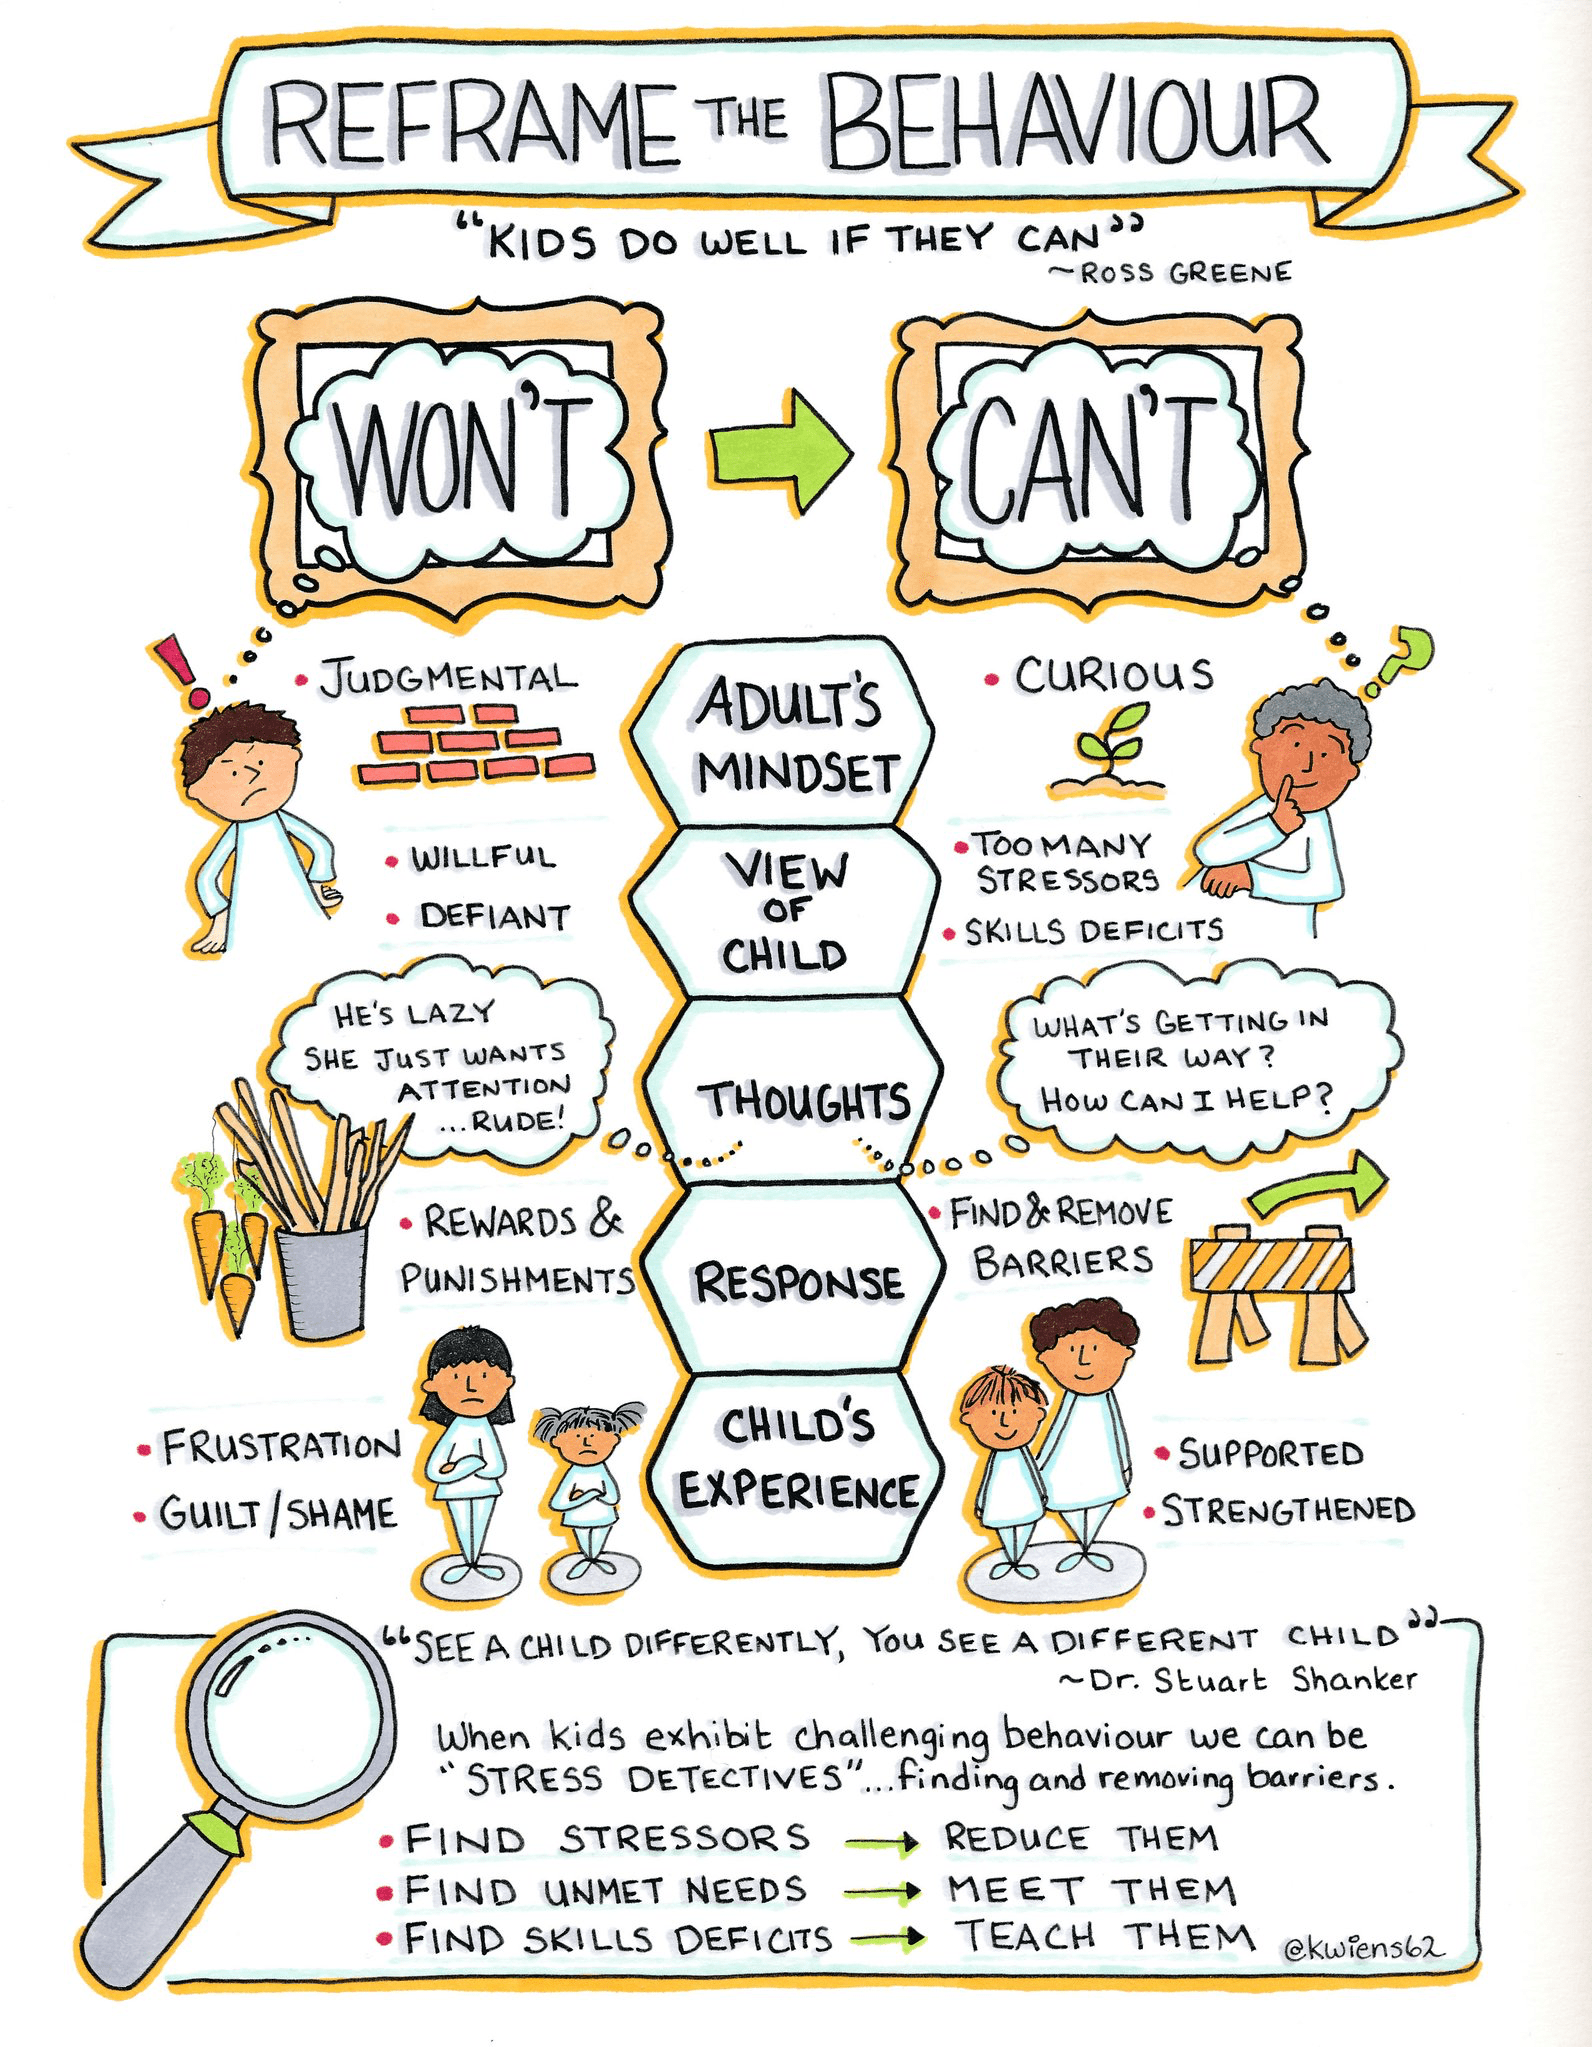 Reframing Behavior Infographic The Family And Youth